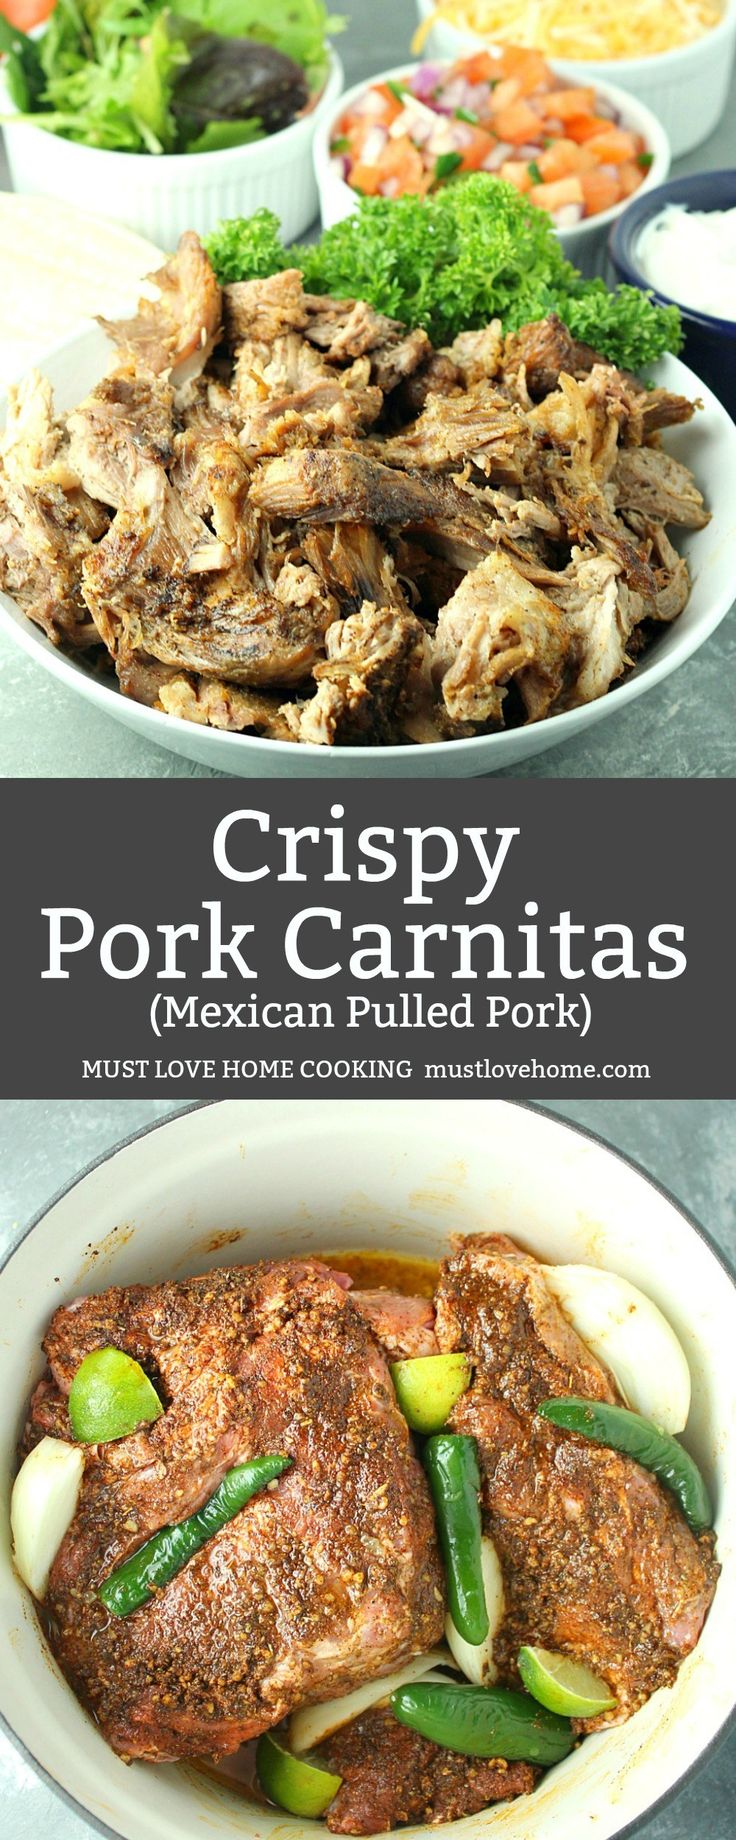 Crispy Pork Carnitas are Dutch oven baked low and slow until fall-apart delicious. So delicious when finished under the broiler to caramelize and crisp.